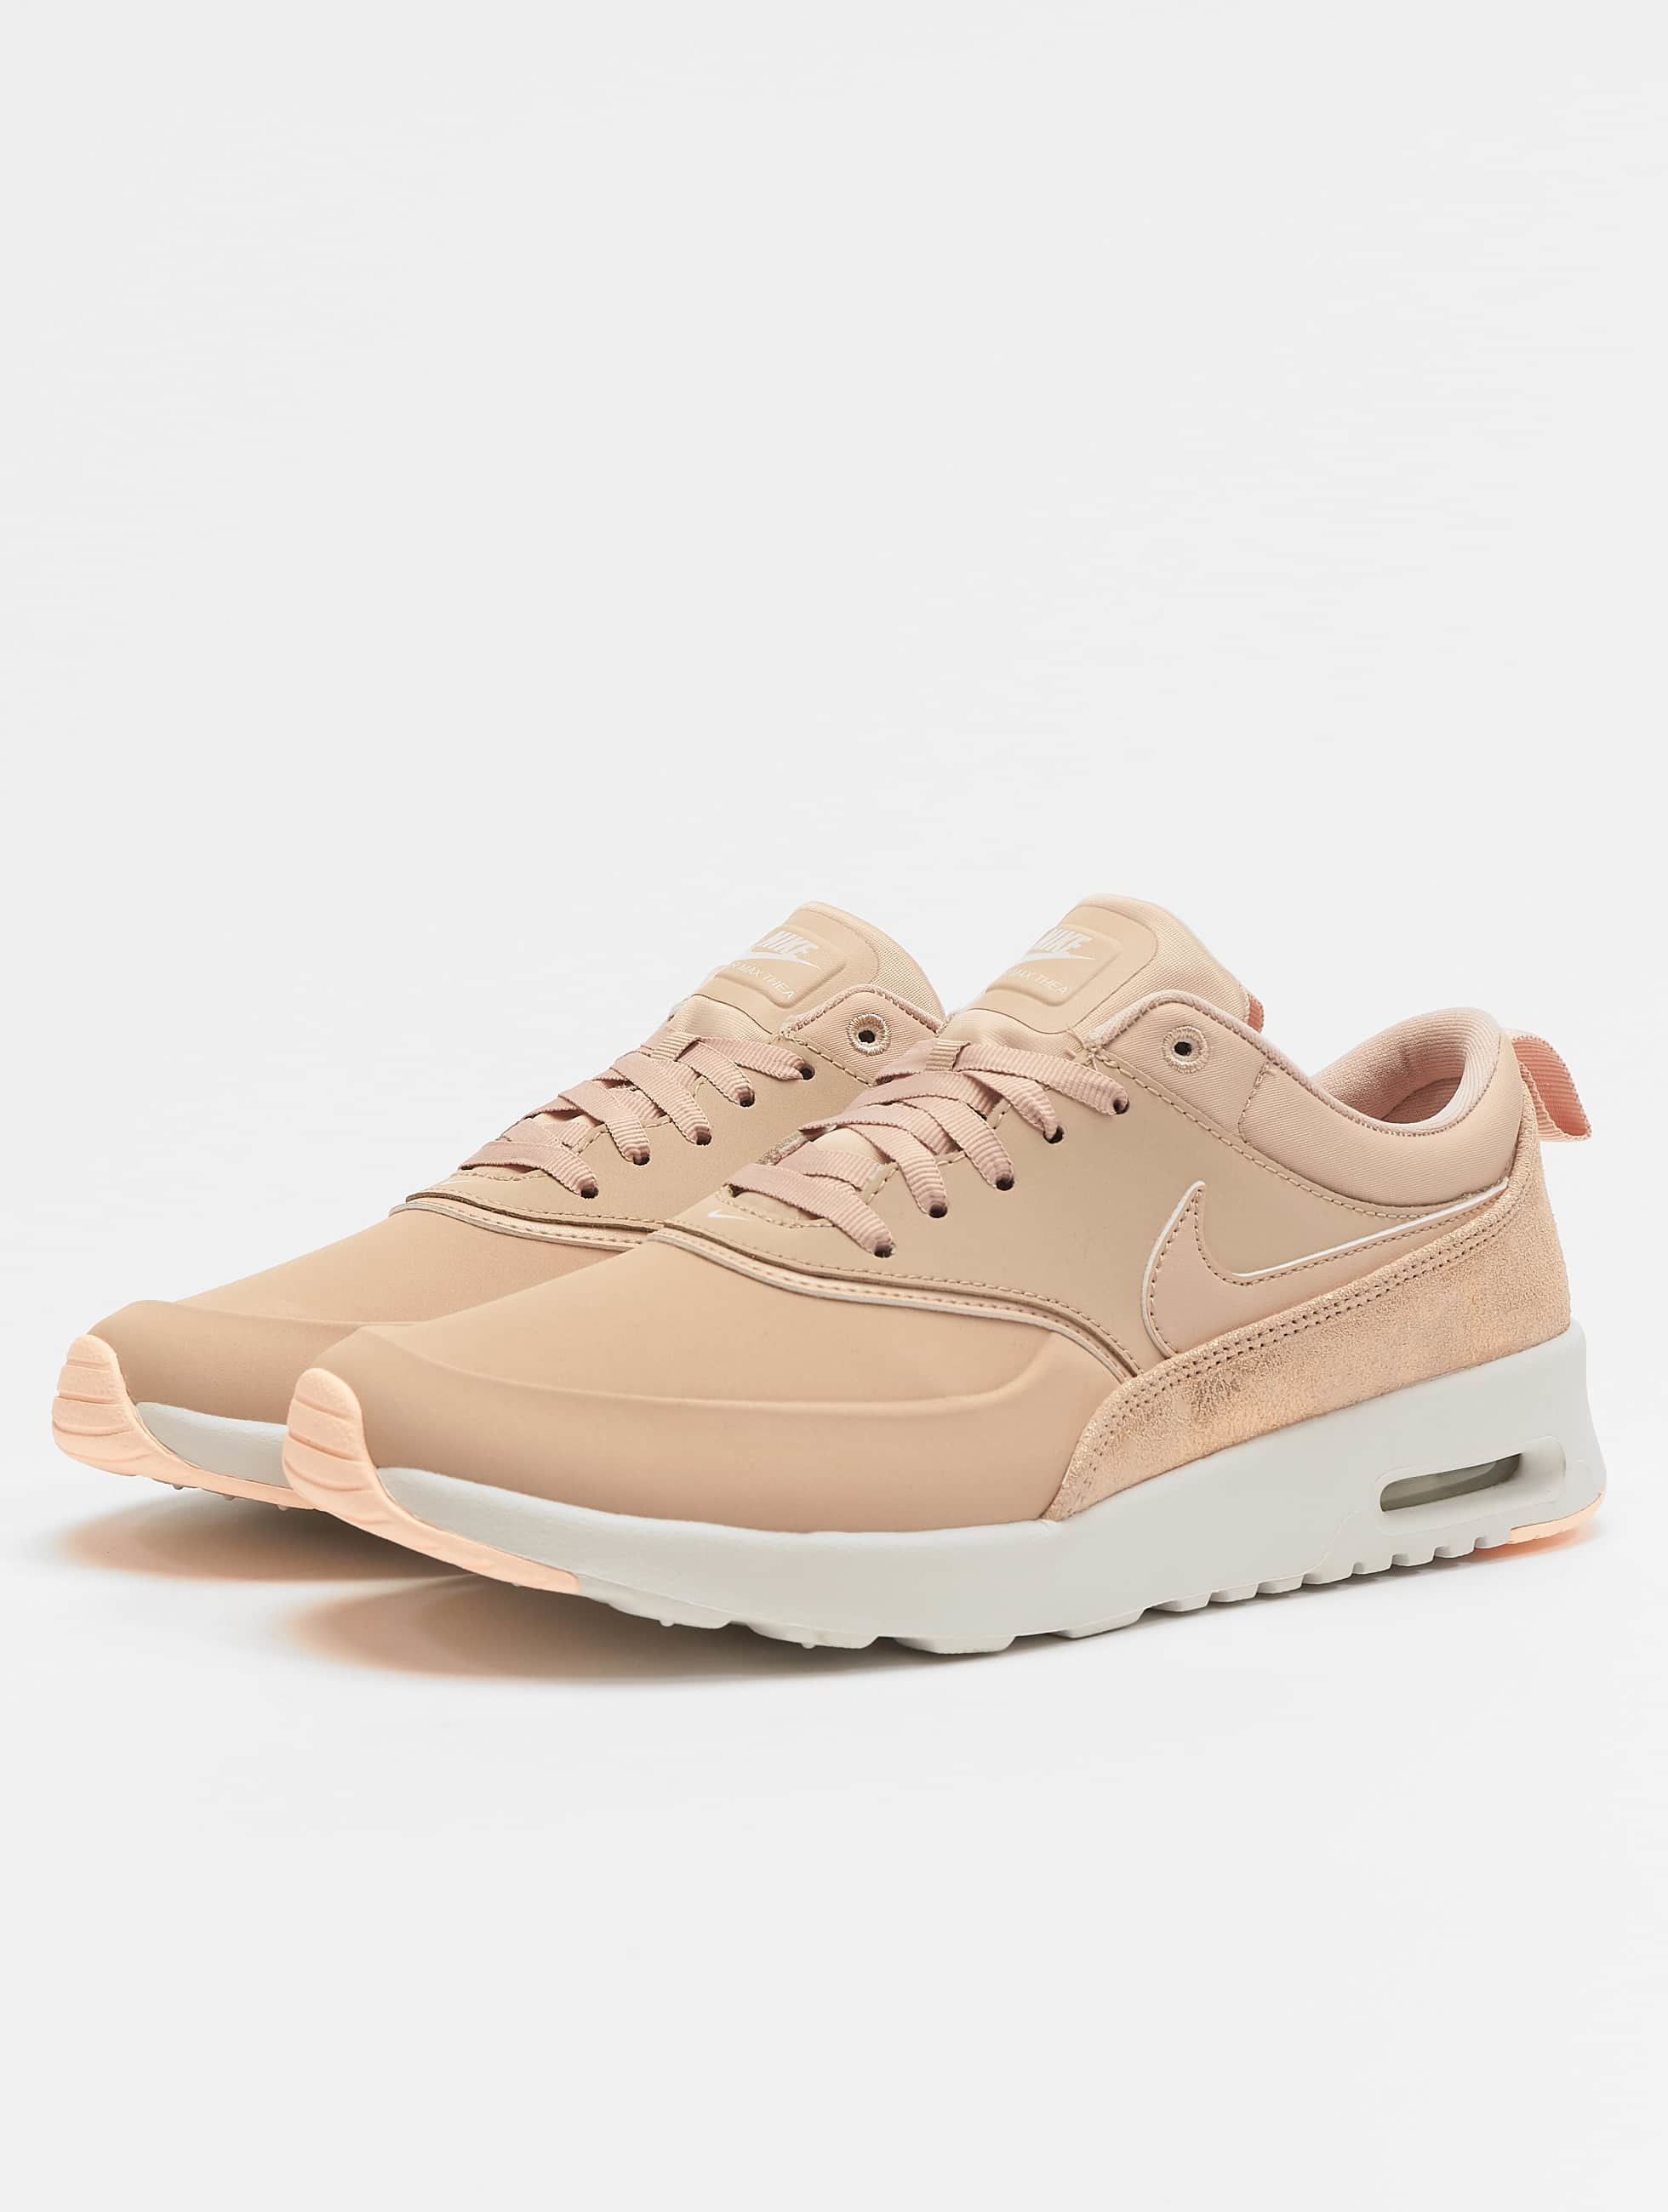 Original Nike Sportswear AIR MAX JEWELL Sneakers Dam beige